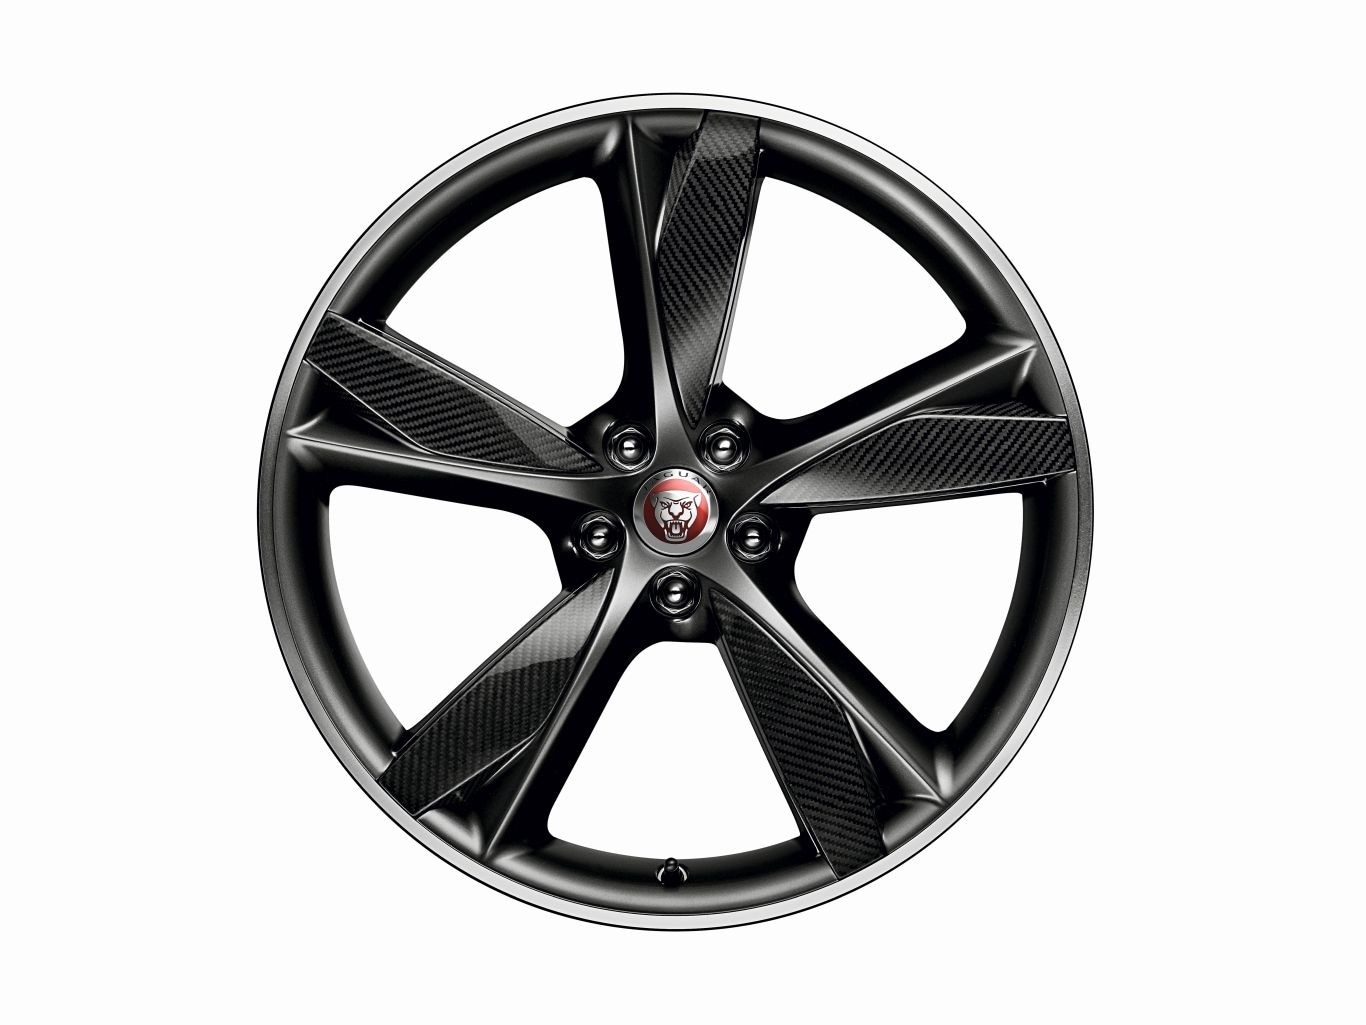 "Alloy Wheel - 20"" Style 5042, 5 spoke, Forged, Carbon Fibre and Satin Dark Grey Diamond Turned finish, Front"